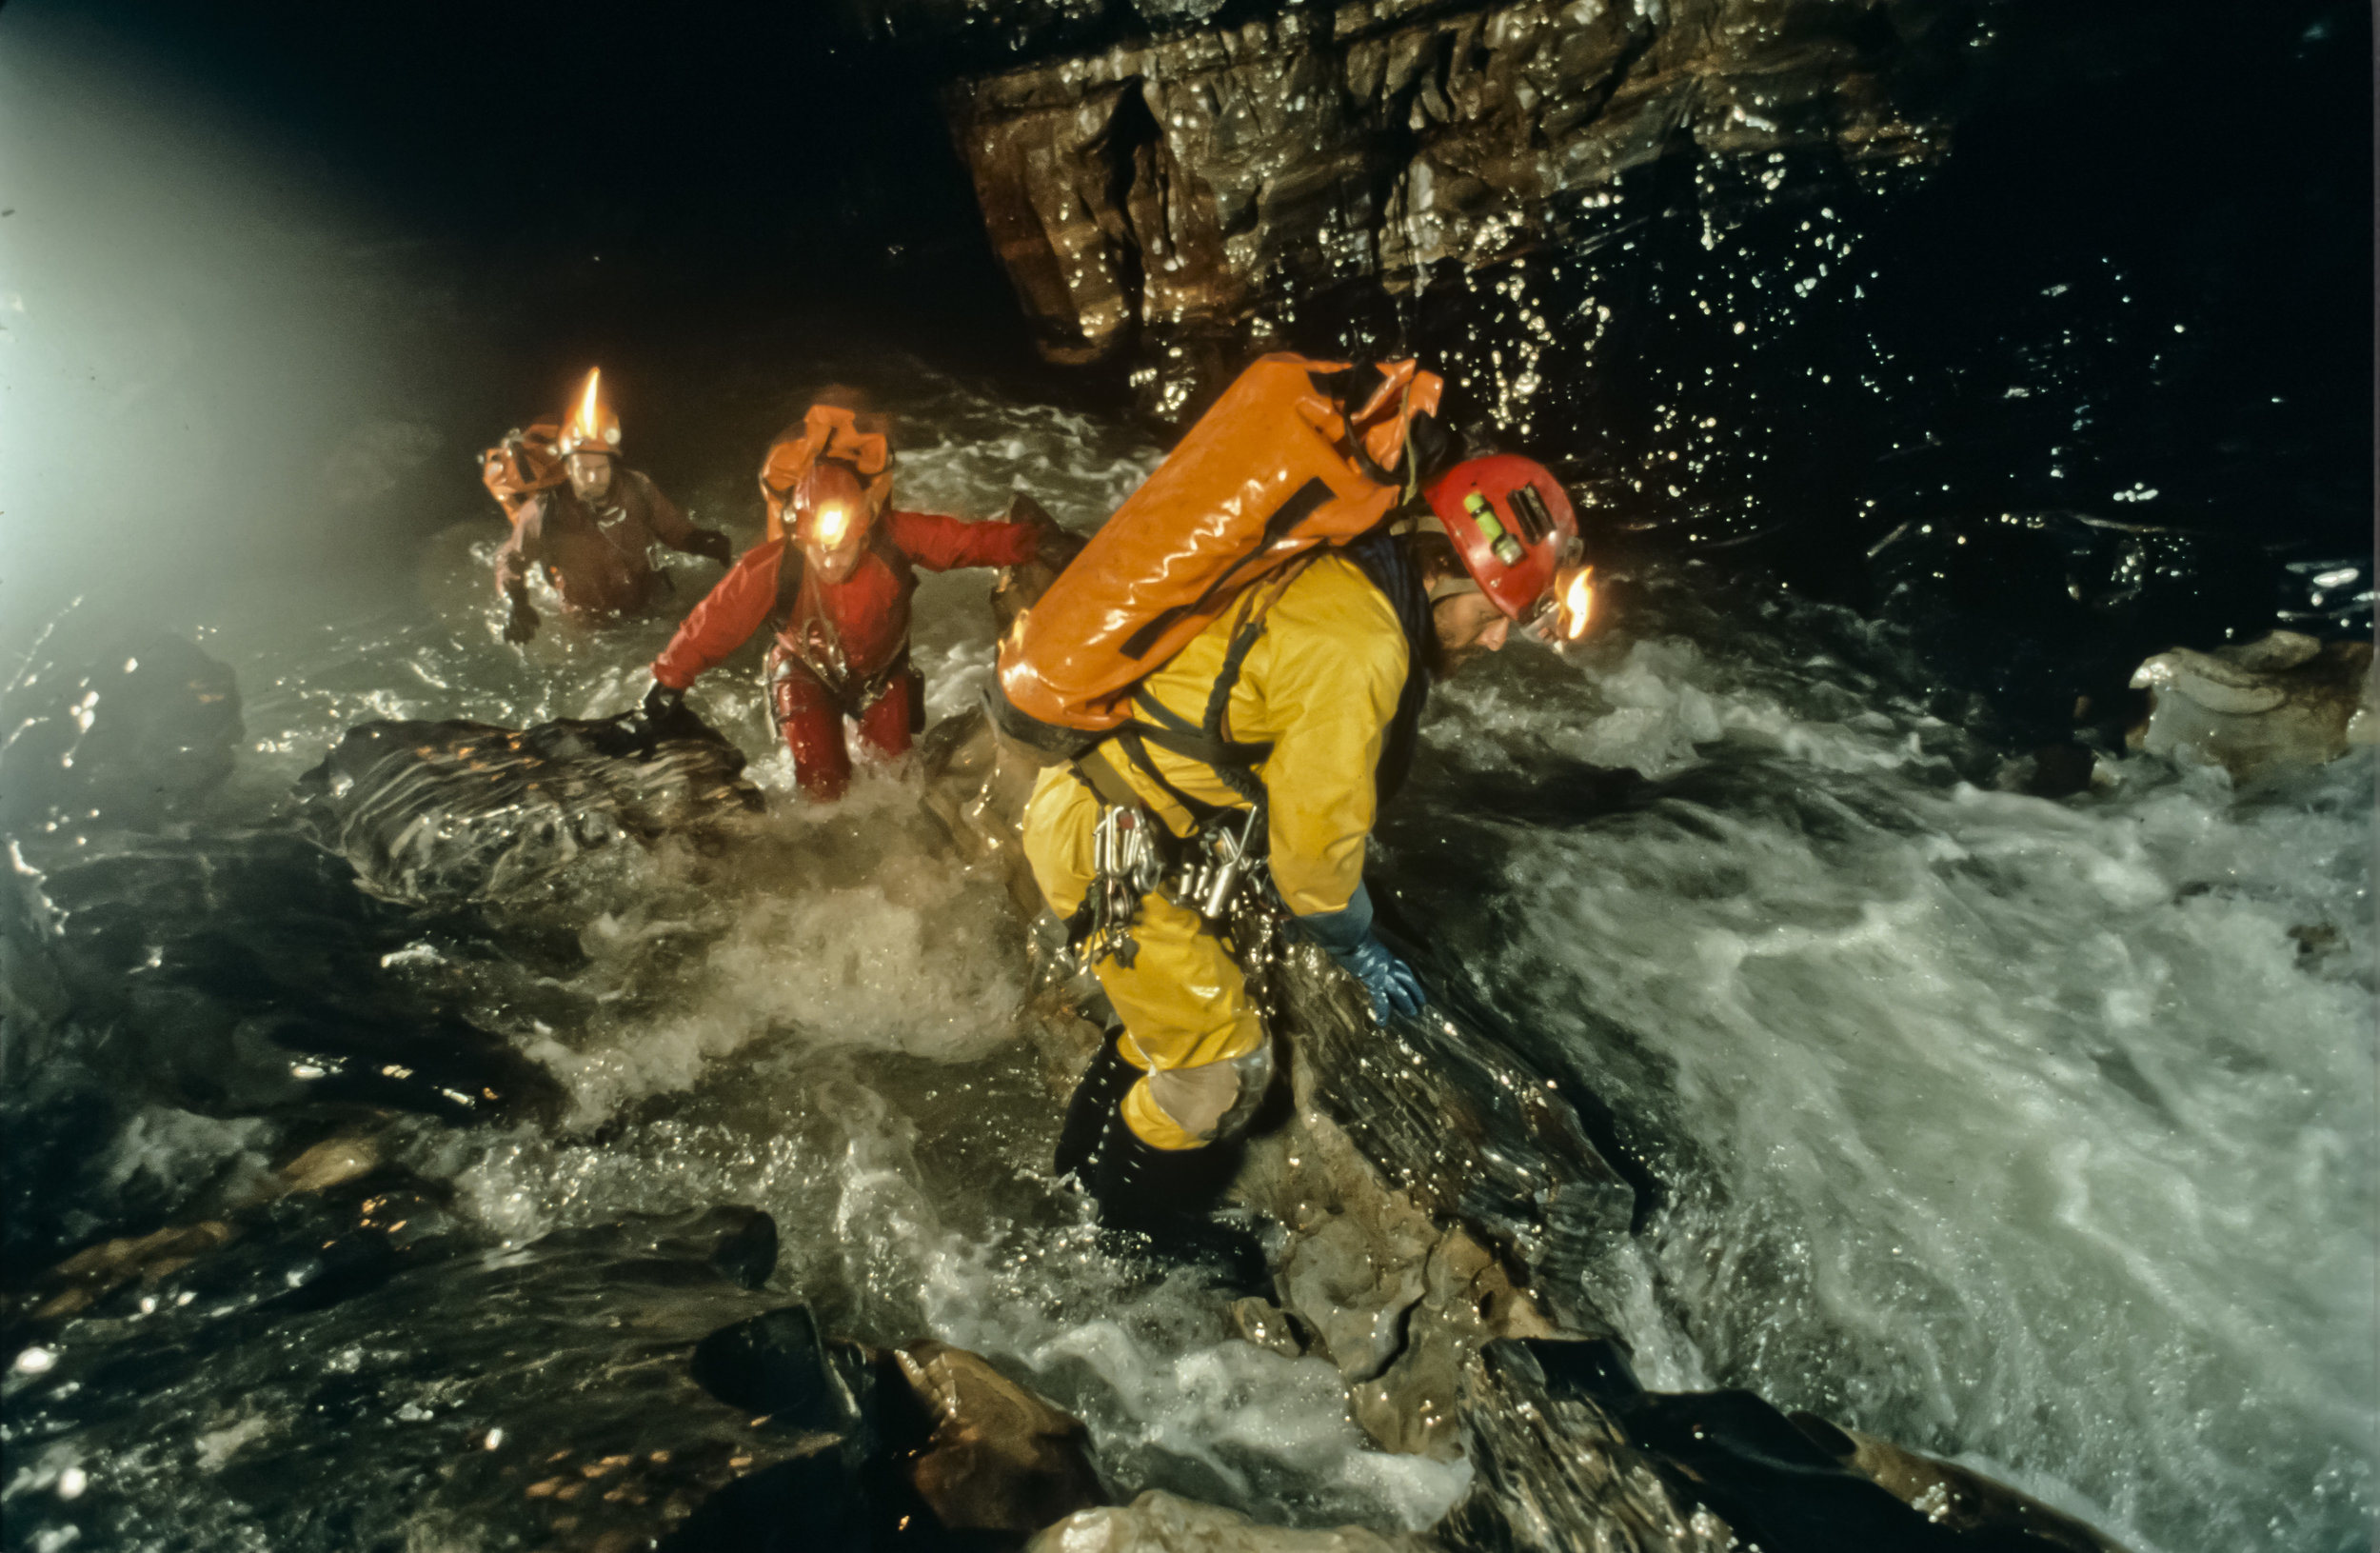 "Lead photo for the National Geographic story, September 1995 issue. The caption read ""Caught in a raging runoff that fell as rain 2,500 feet [760m] above them, explorers struggle for balance within the Huautla cave system. Photo by U. S. Deep Caving Team/Wes Skiles."